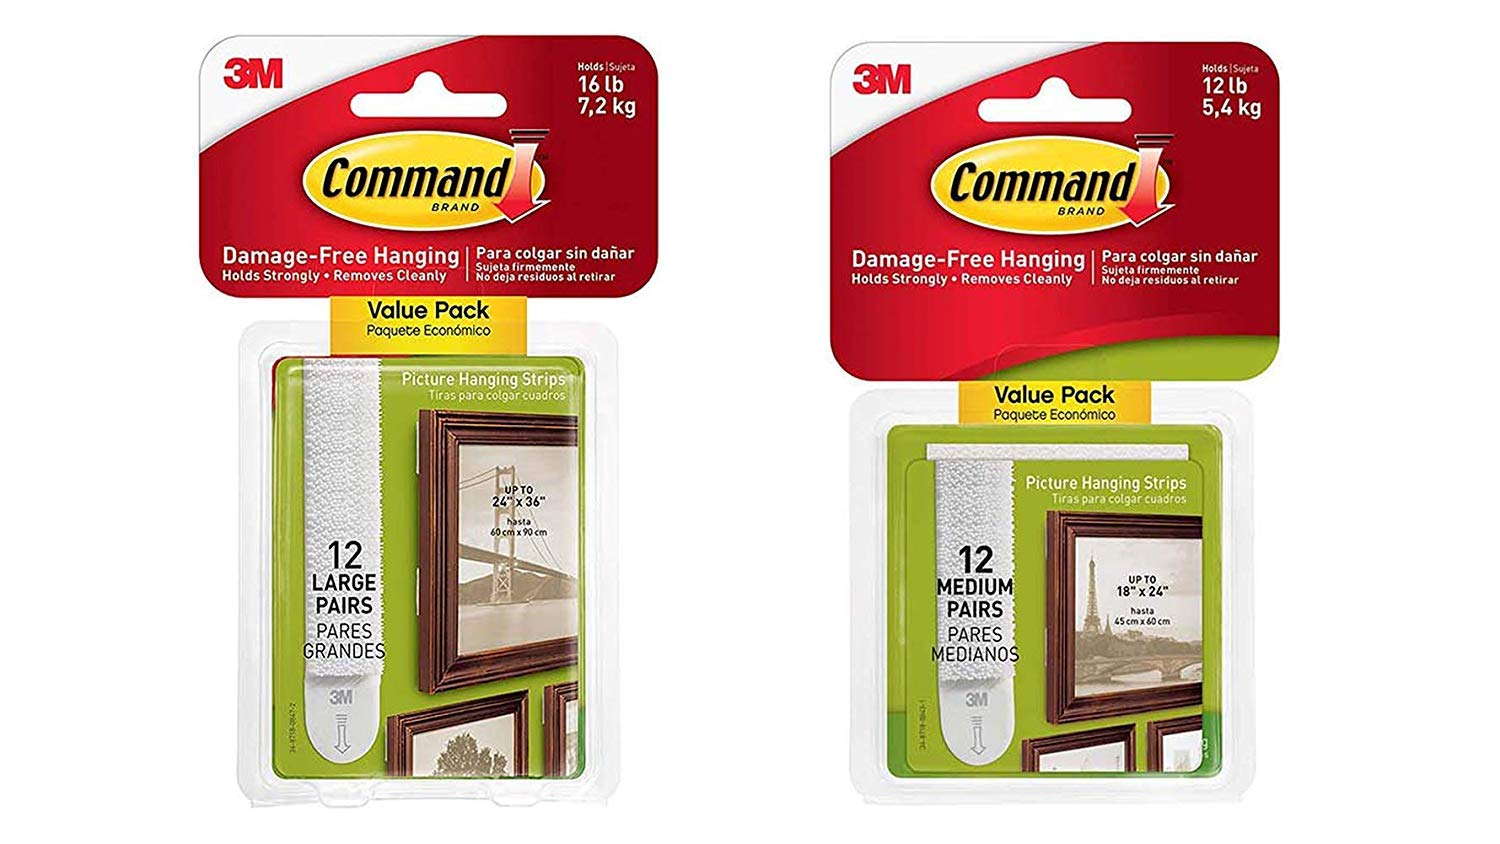 Command Picture WPQ1 & Frame Hanging Strips Value Pack 9JKCY9, 12-Pairs Medium and 12-Pairs Large, White by Command